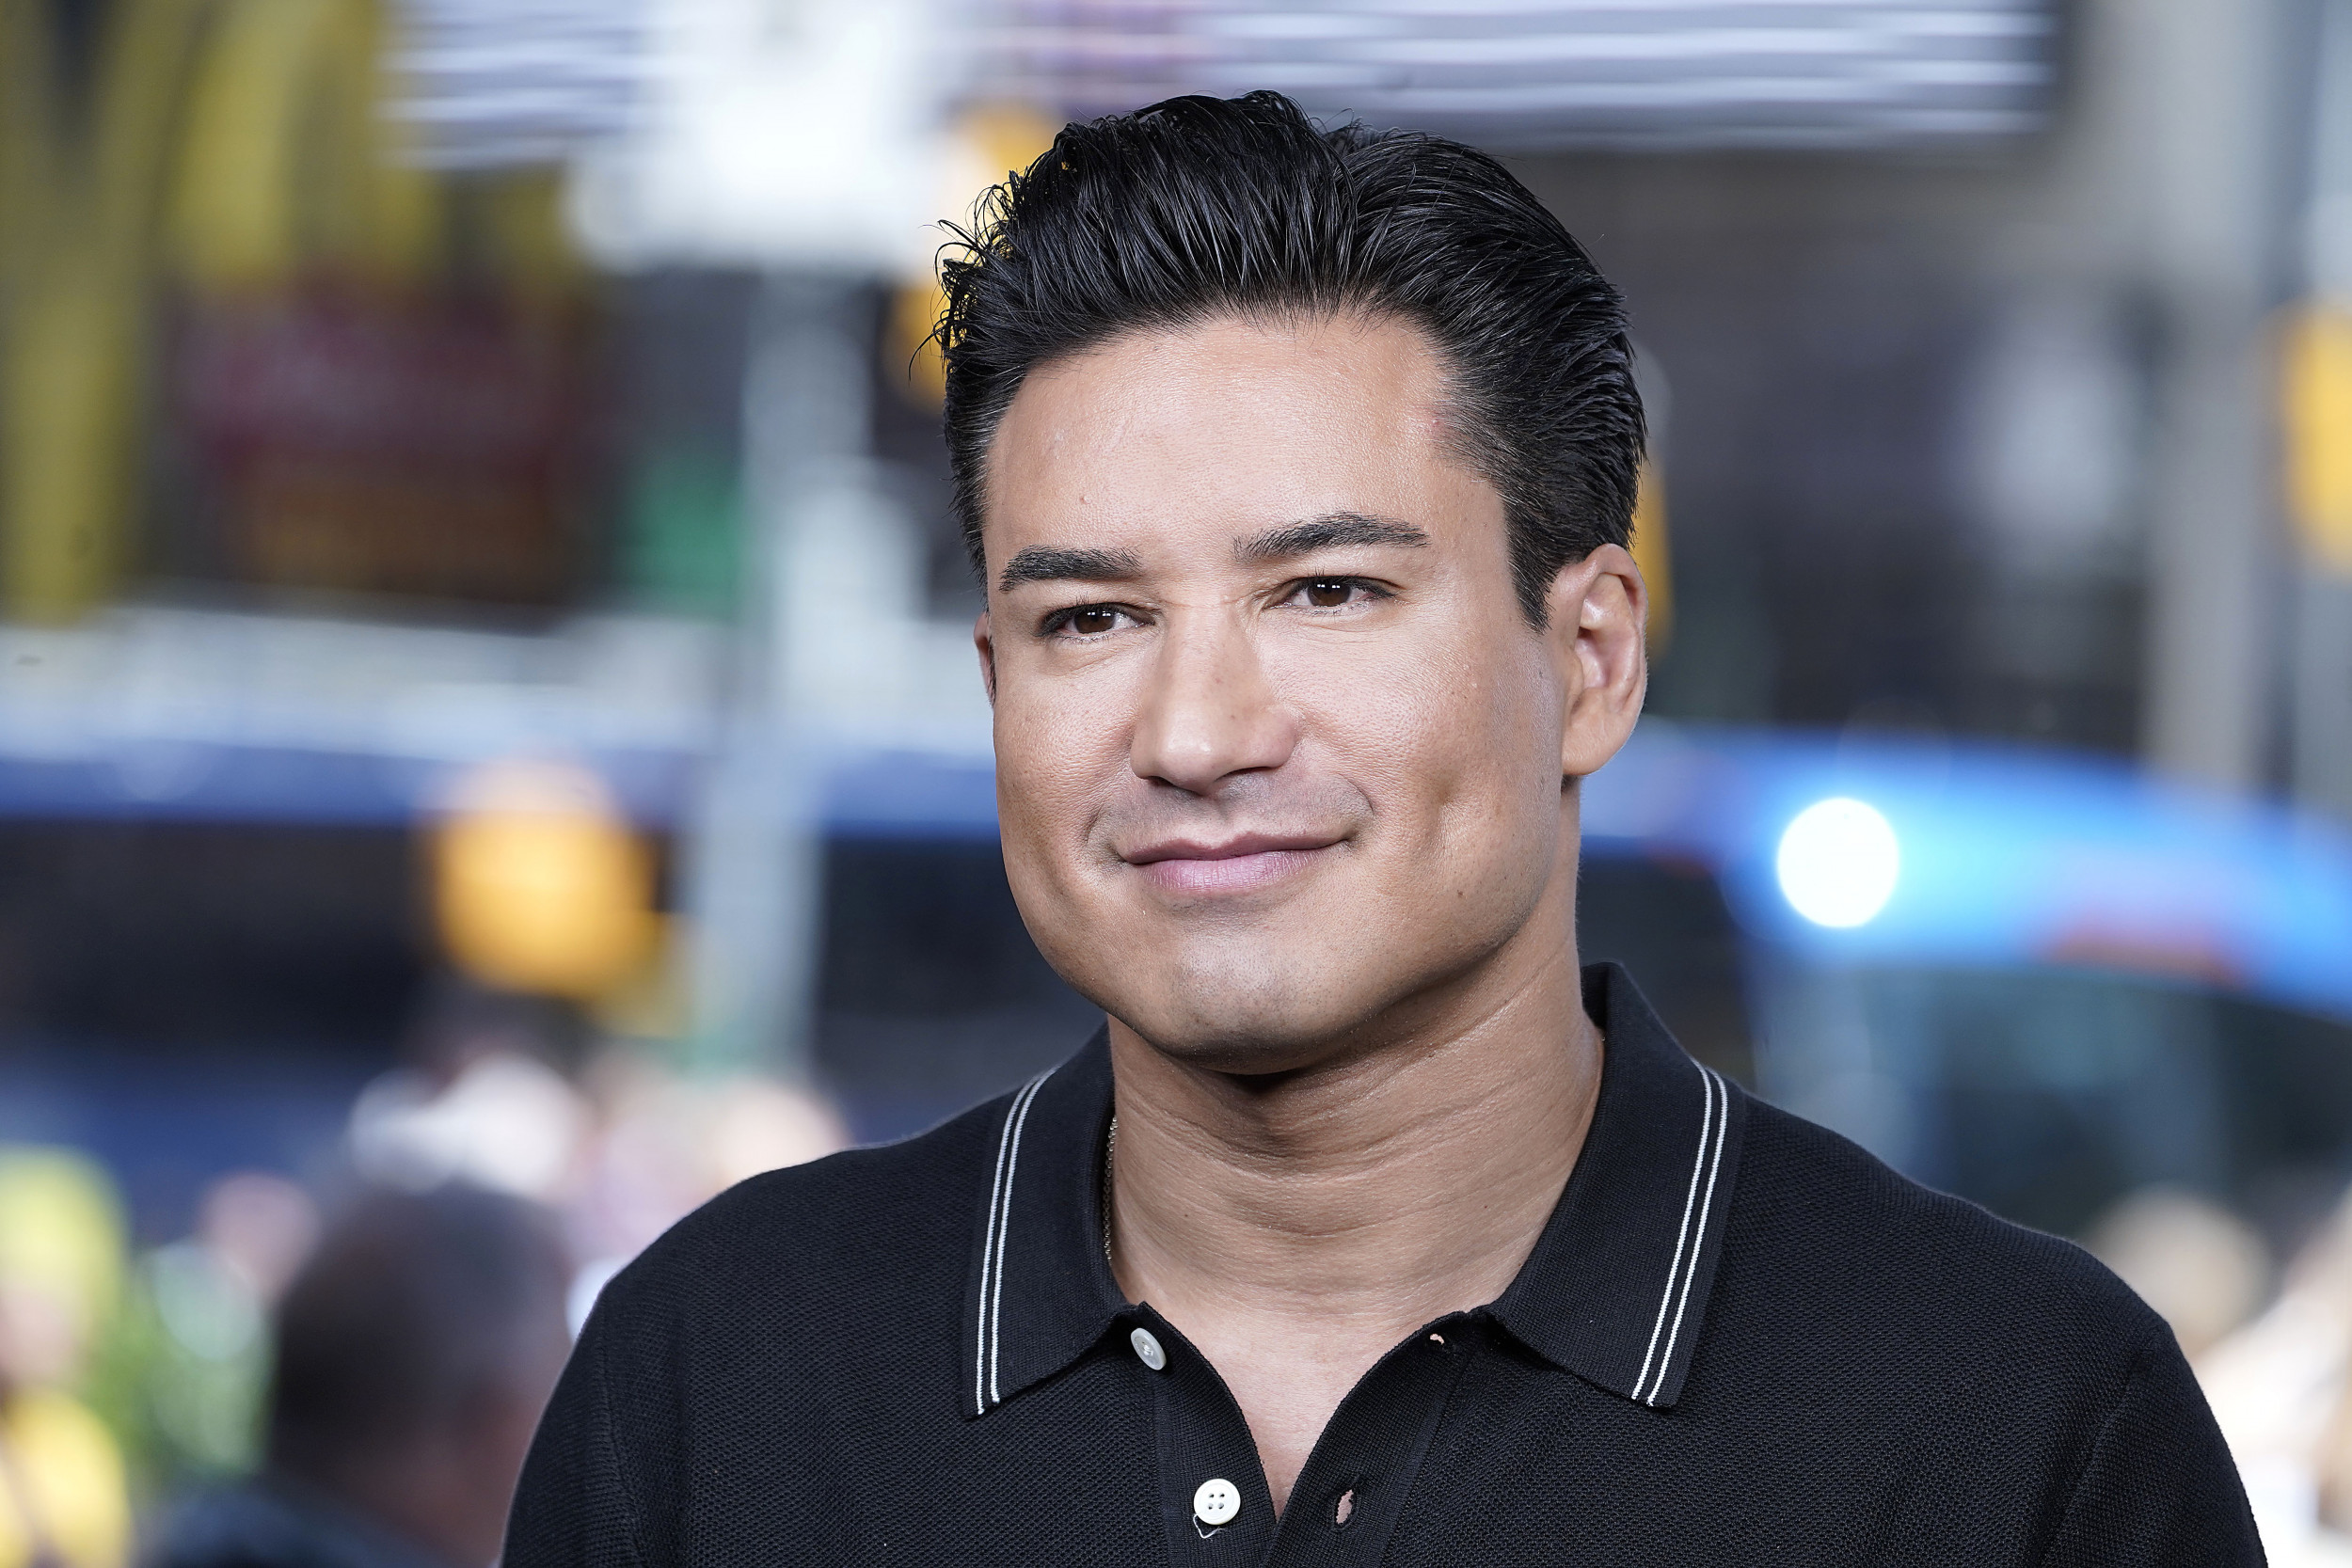 Mario Lopez Responds To Criticism Of His Comments About